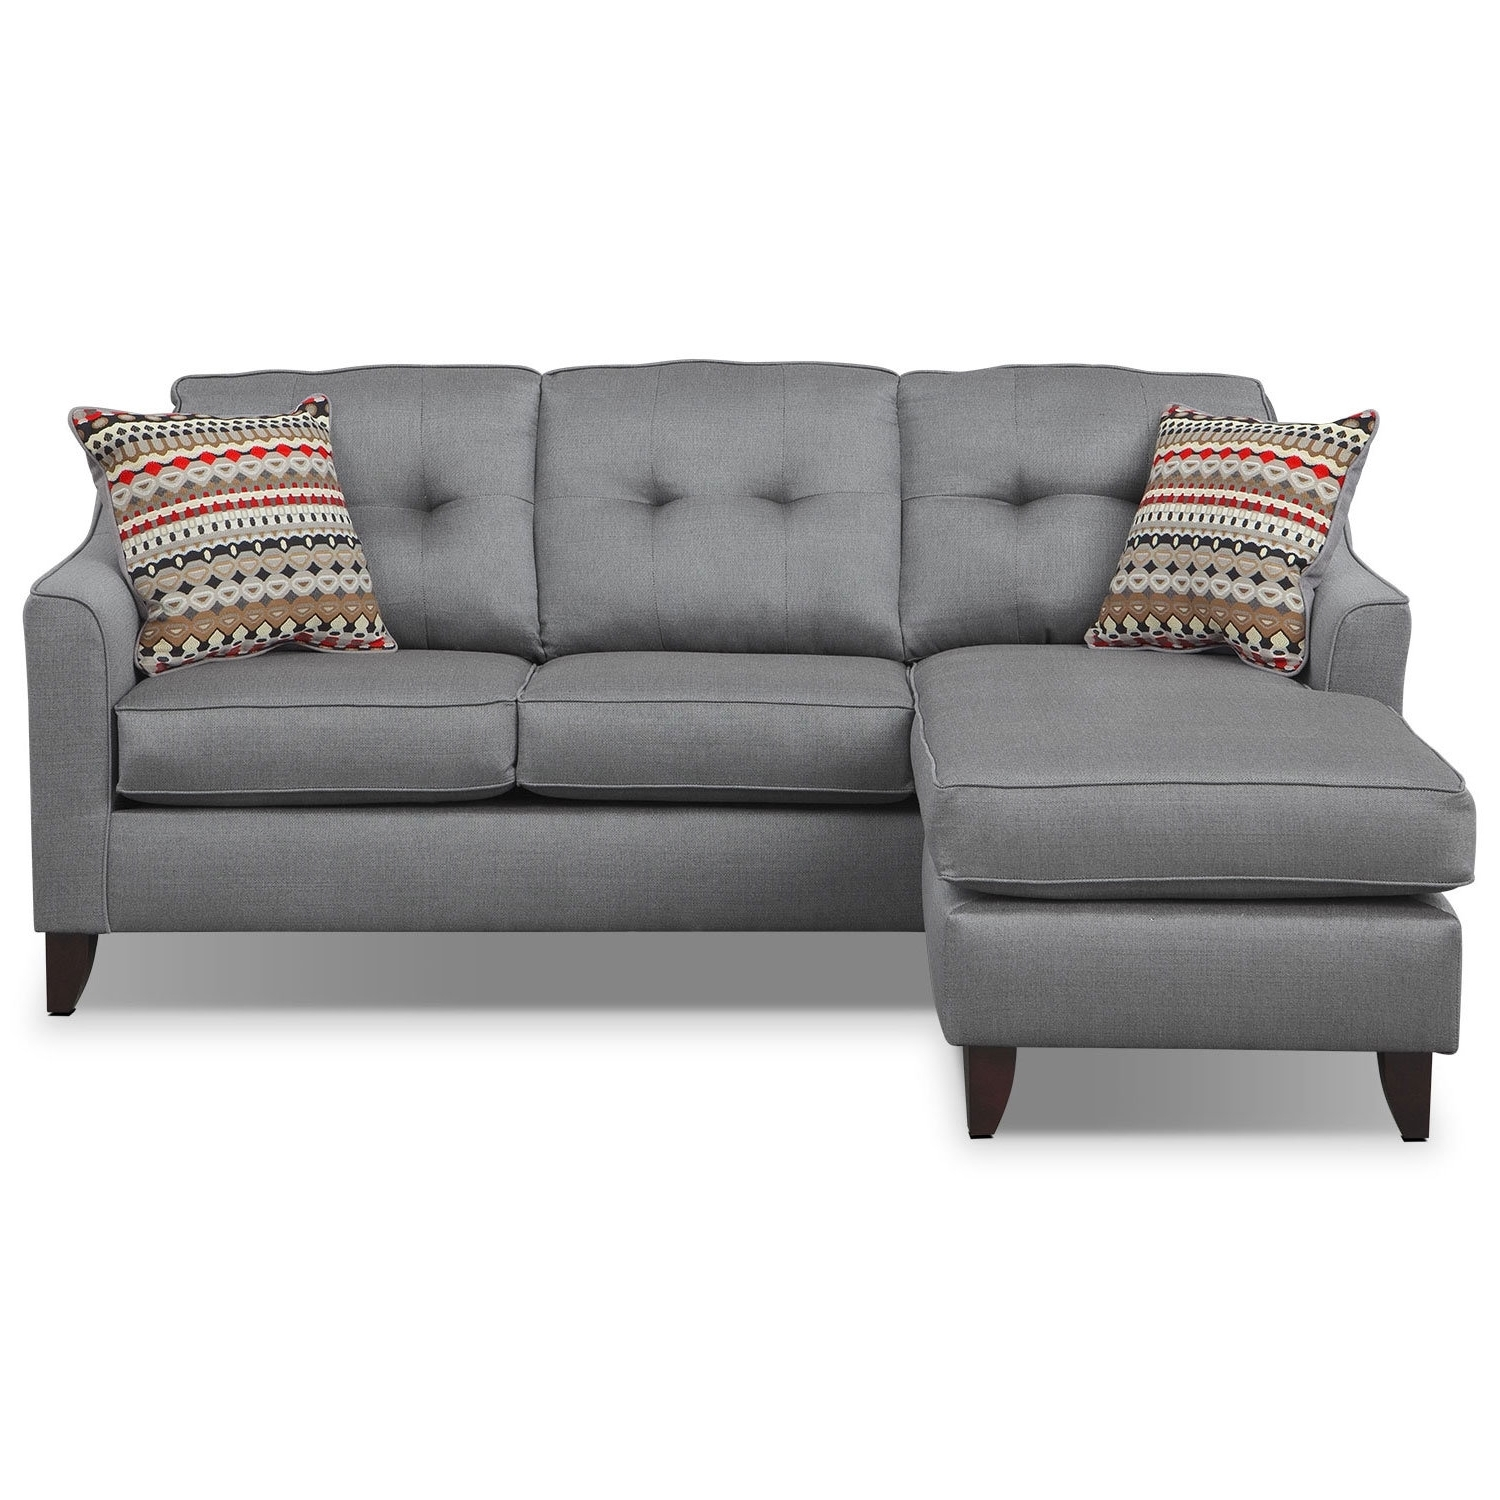 Captivating Fullsize Of Sofas And More Large Of Sofas And More ...